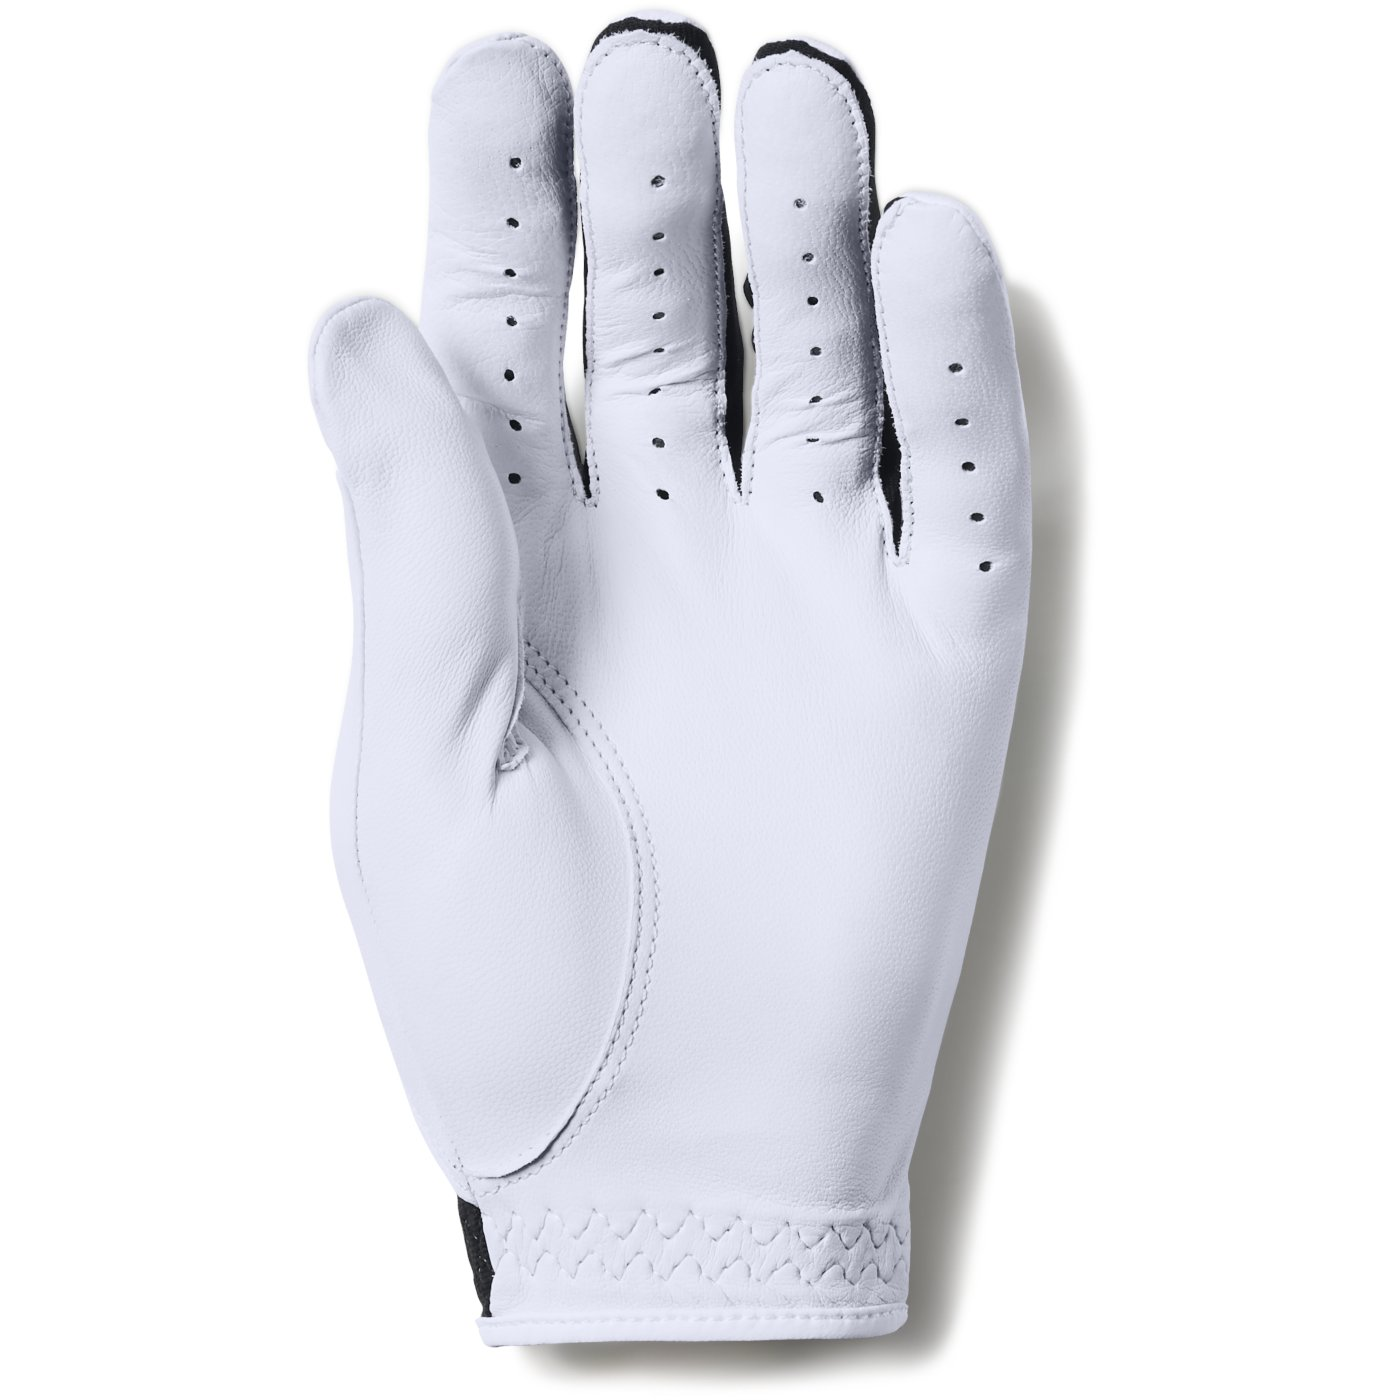 Under-Armour-UA-CoolSwitch-Golf-Glove-LH-Cadet-2018-Multiple-Colors-amp-Sizes thumbnail 4